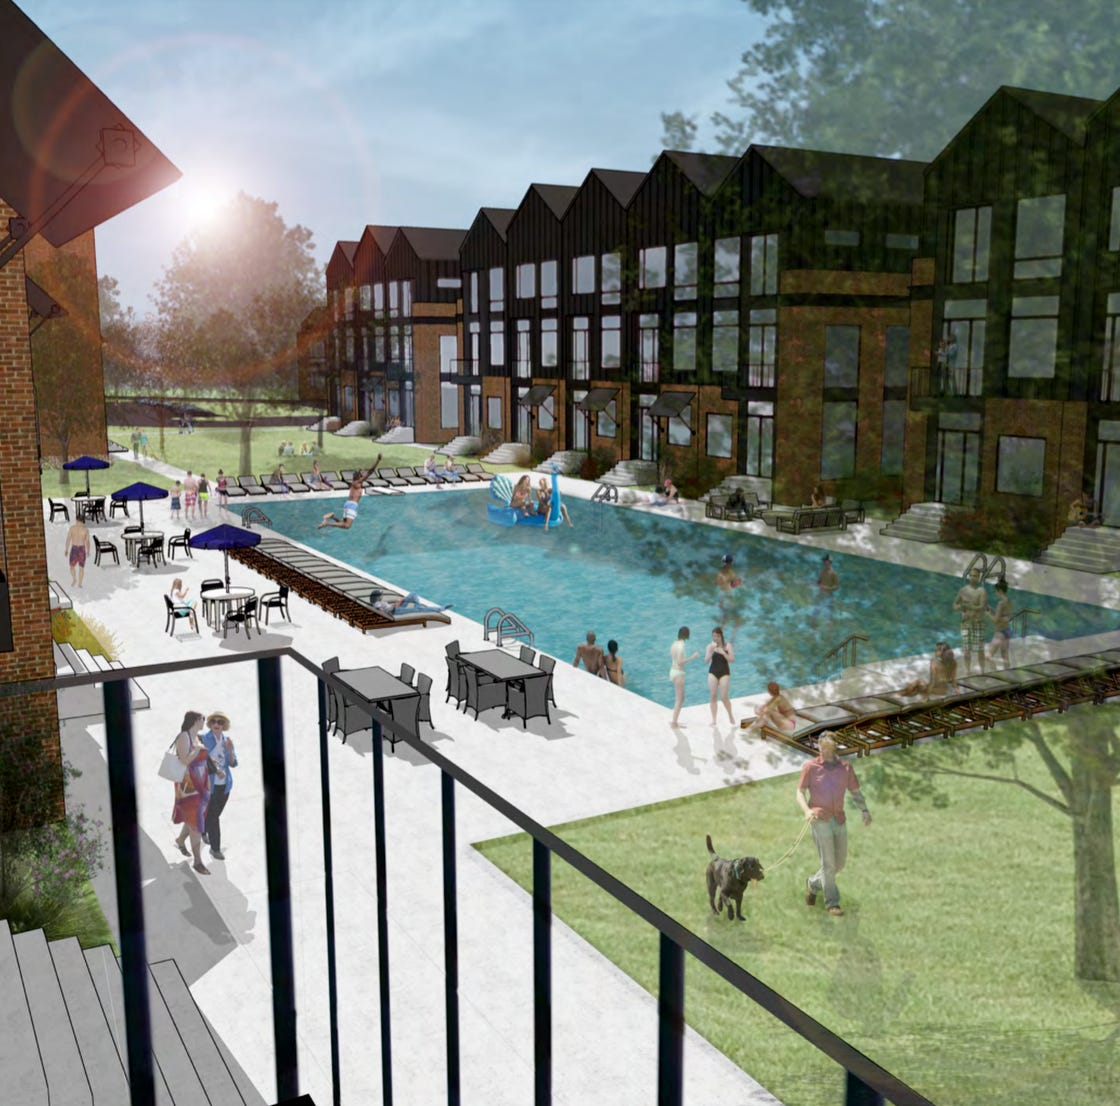 Mt. Juliet development: Mixed-use project with 220 apartments and townhomes to start